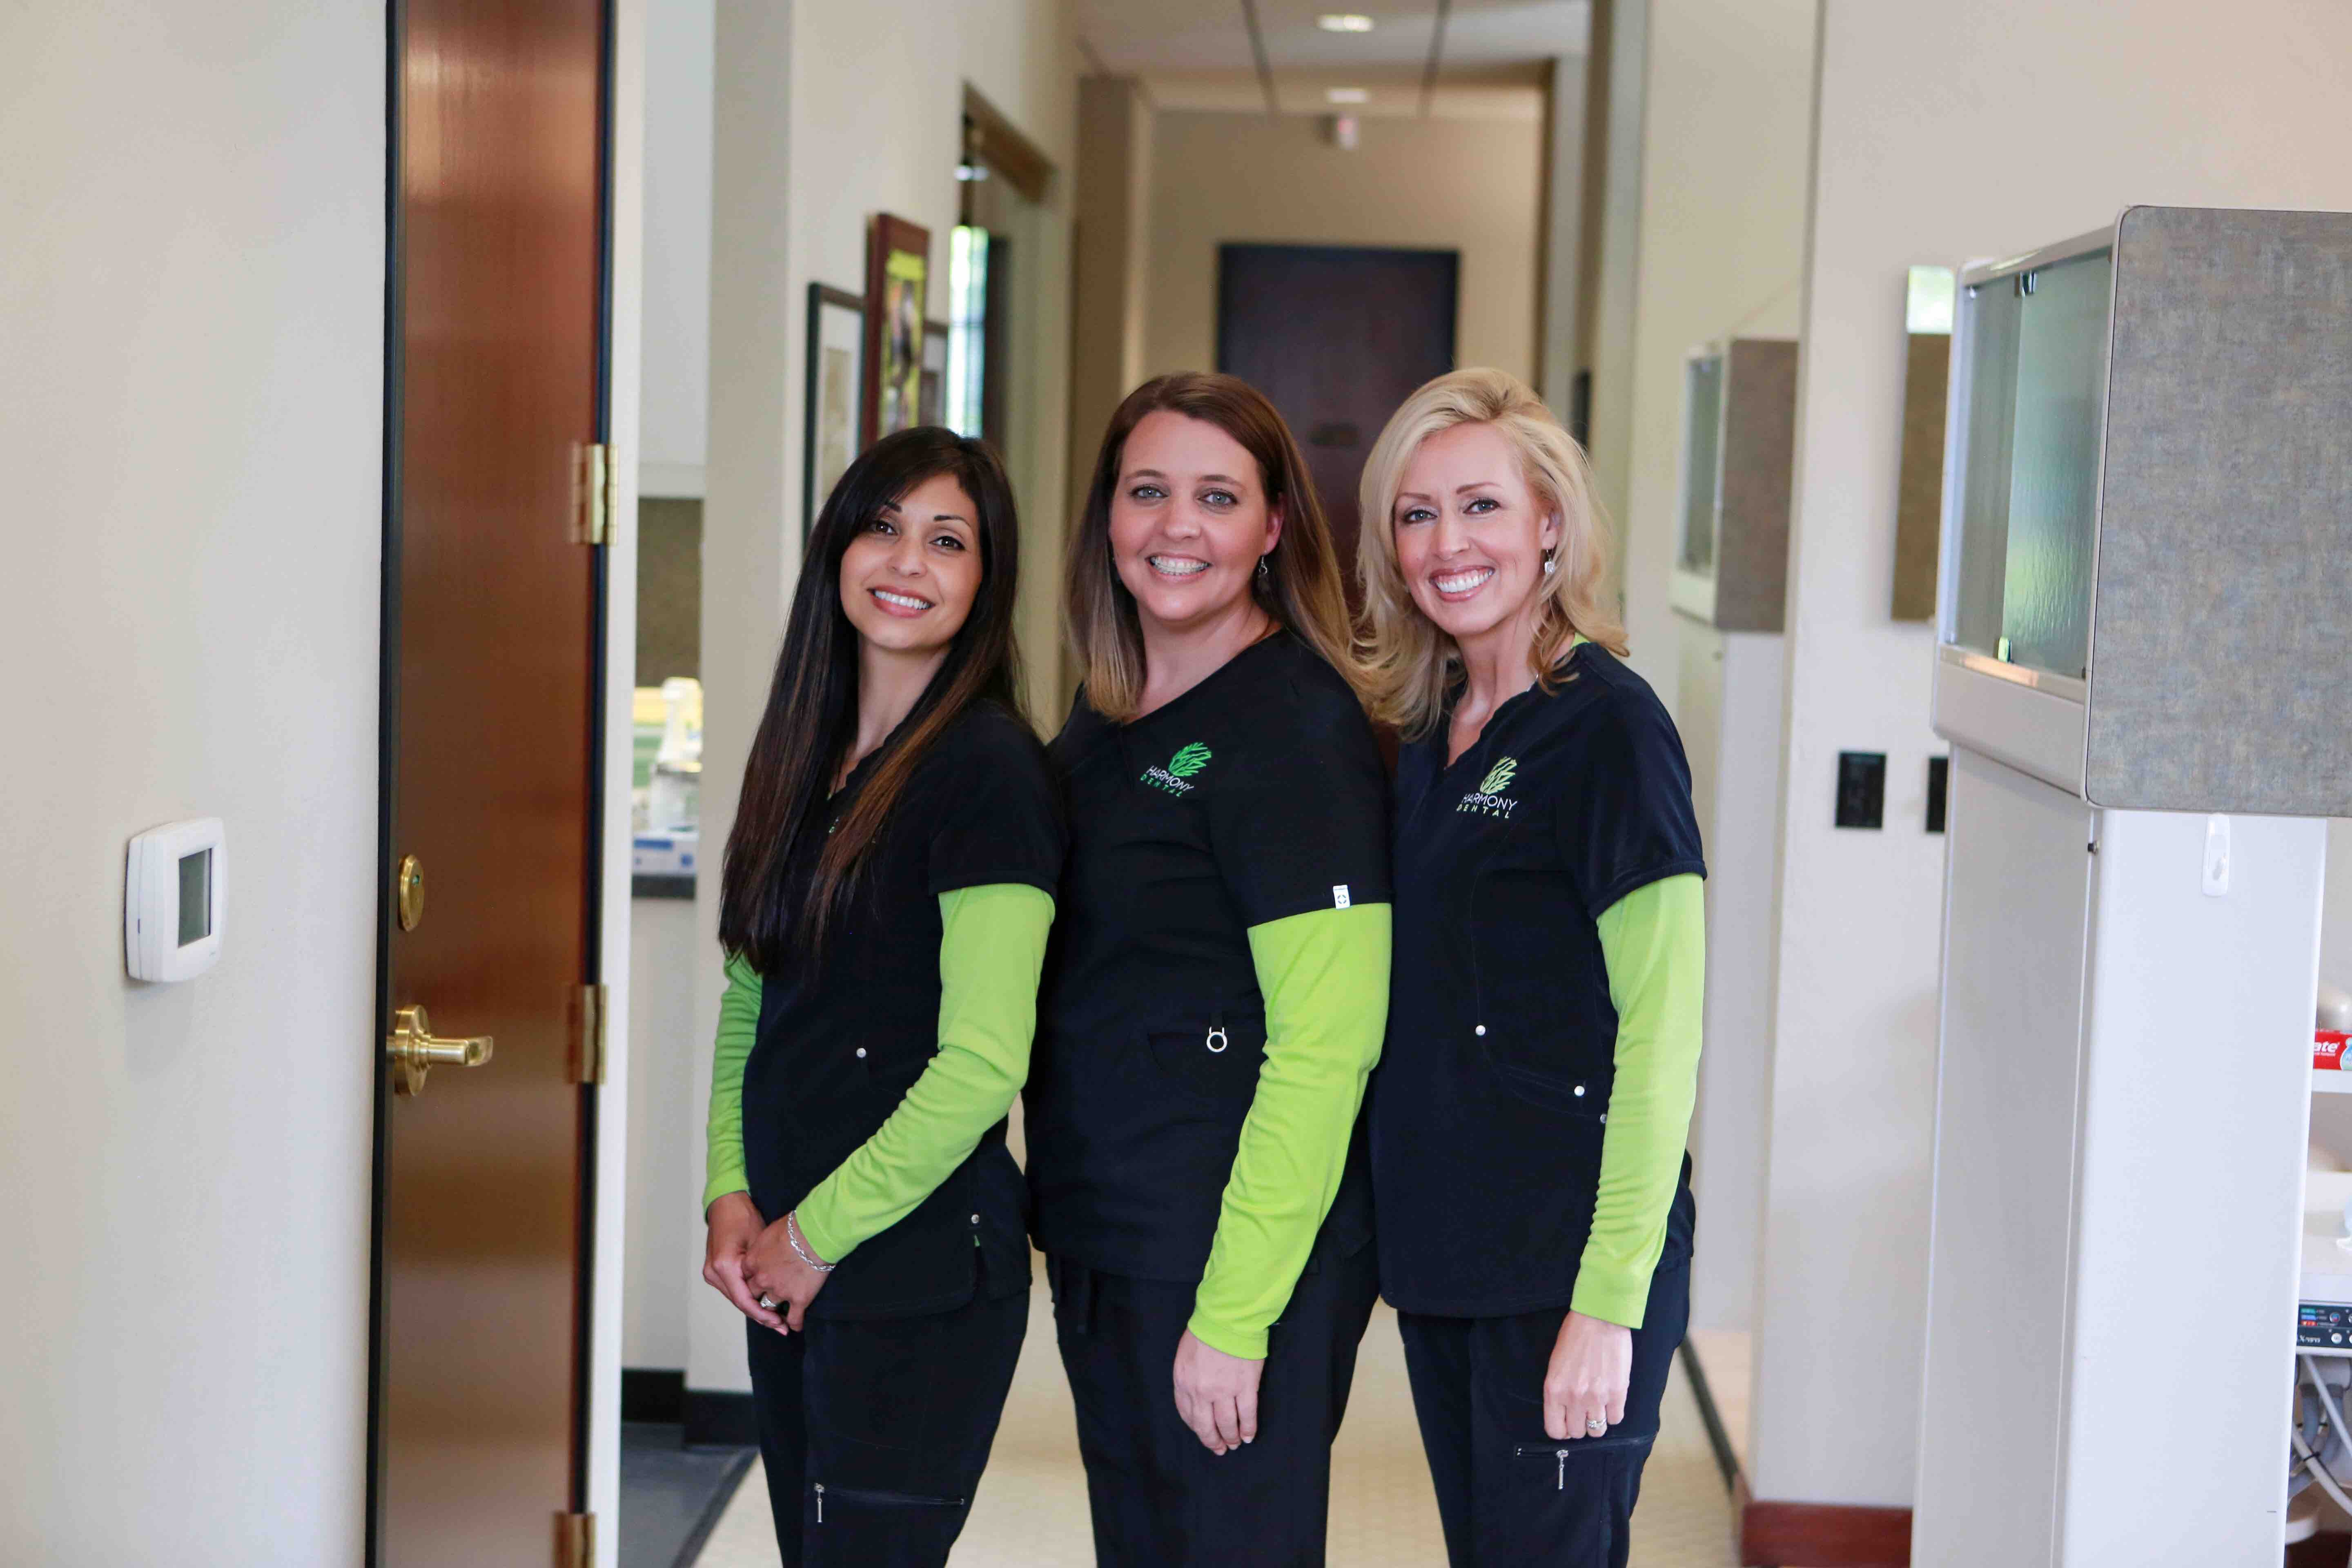 Staff at Harmony Dental